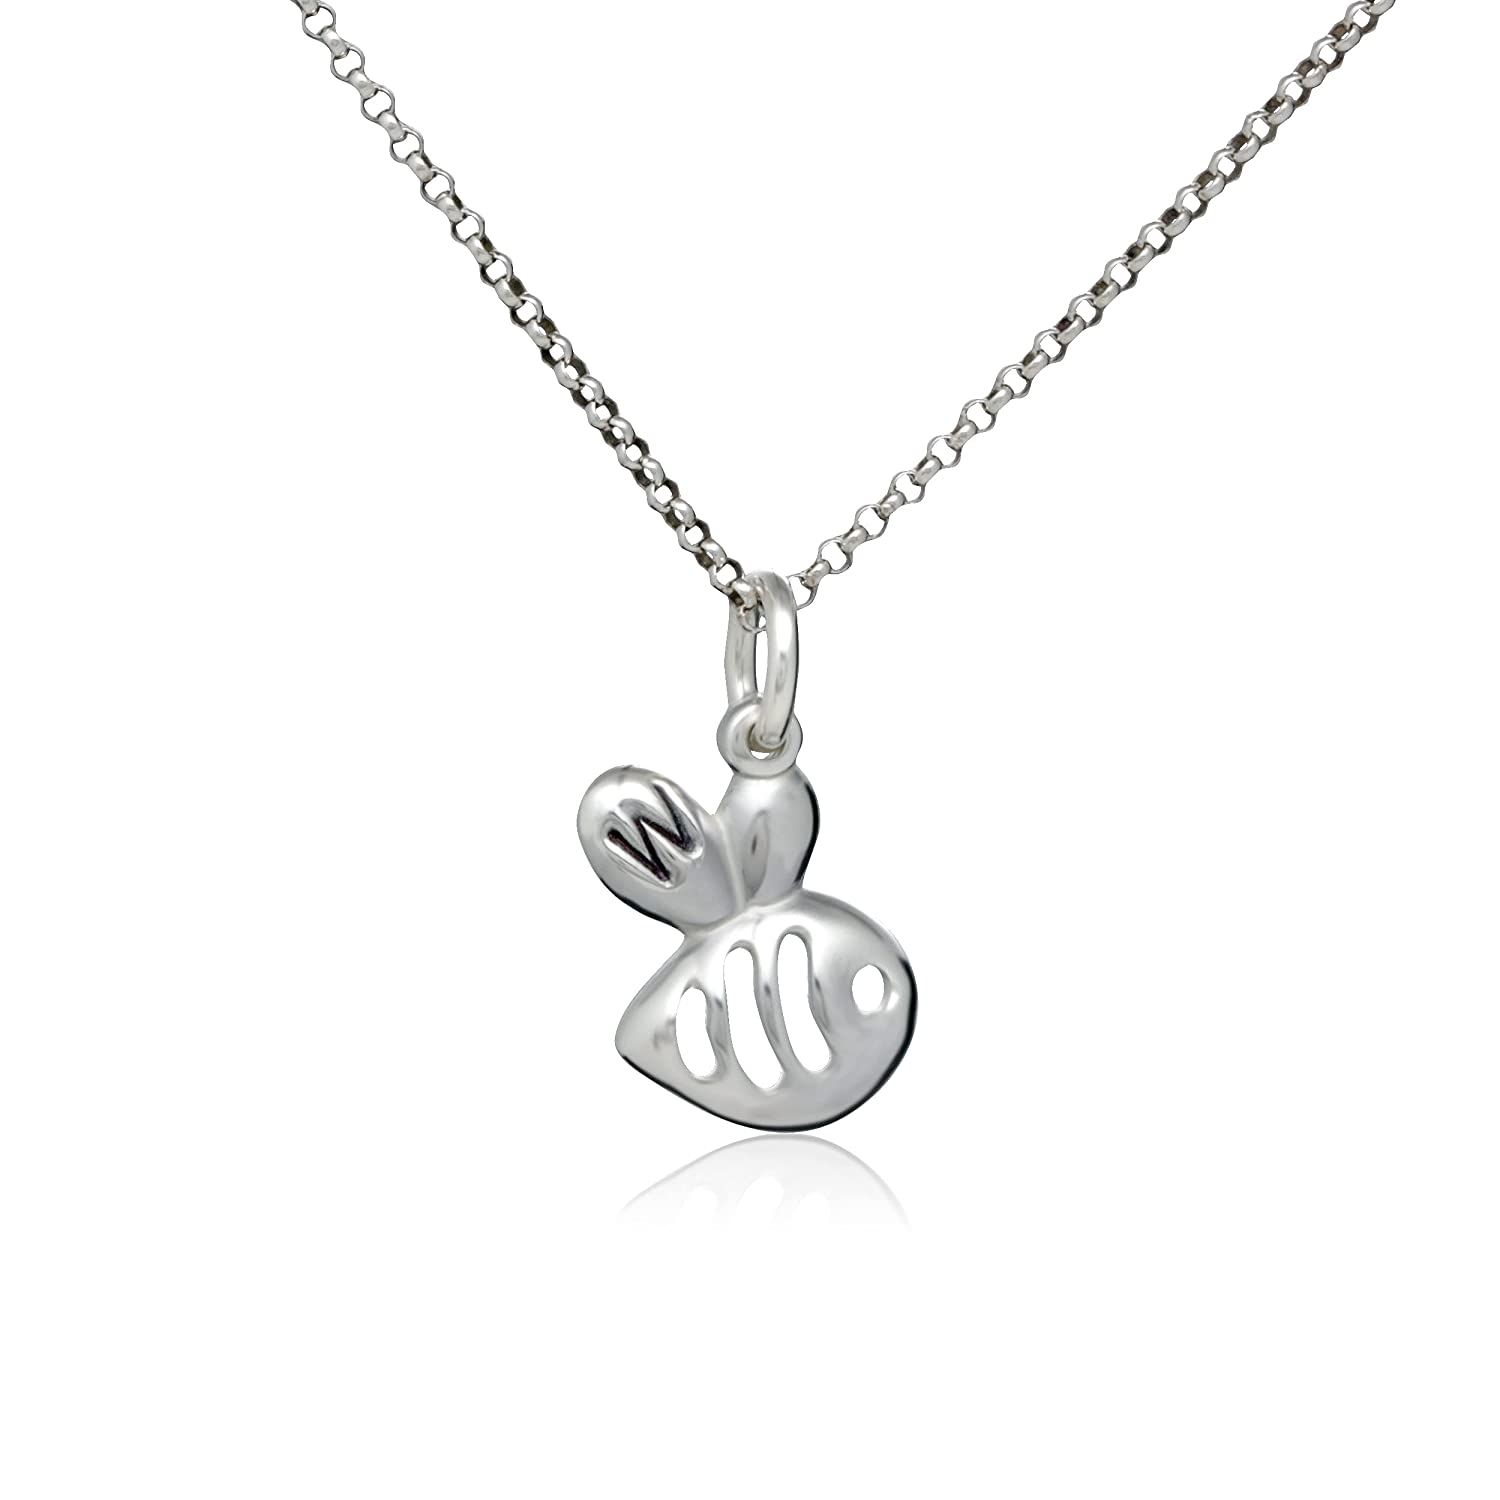 Bee Charm Pendant 67% OFF of fixed price Necklace personalized with Initial Attention brand W your